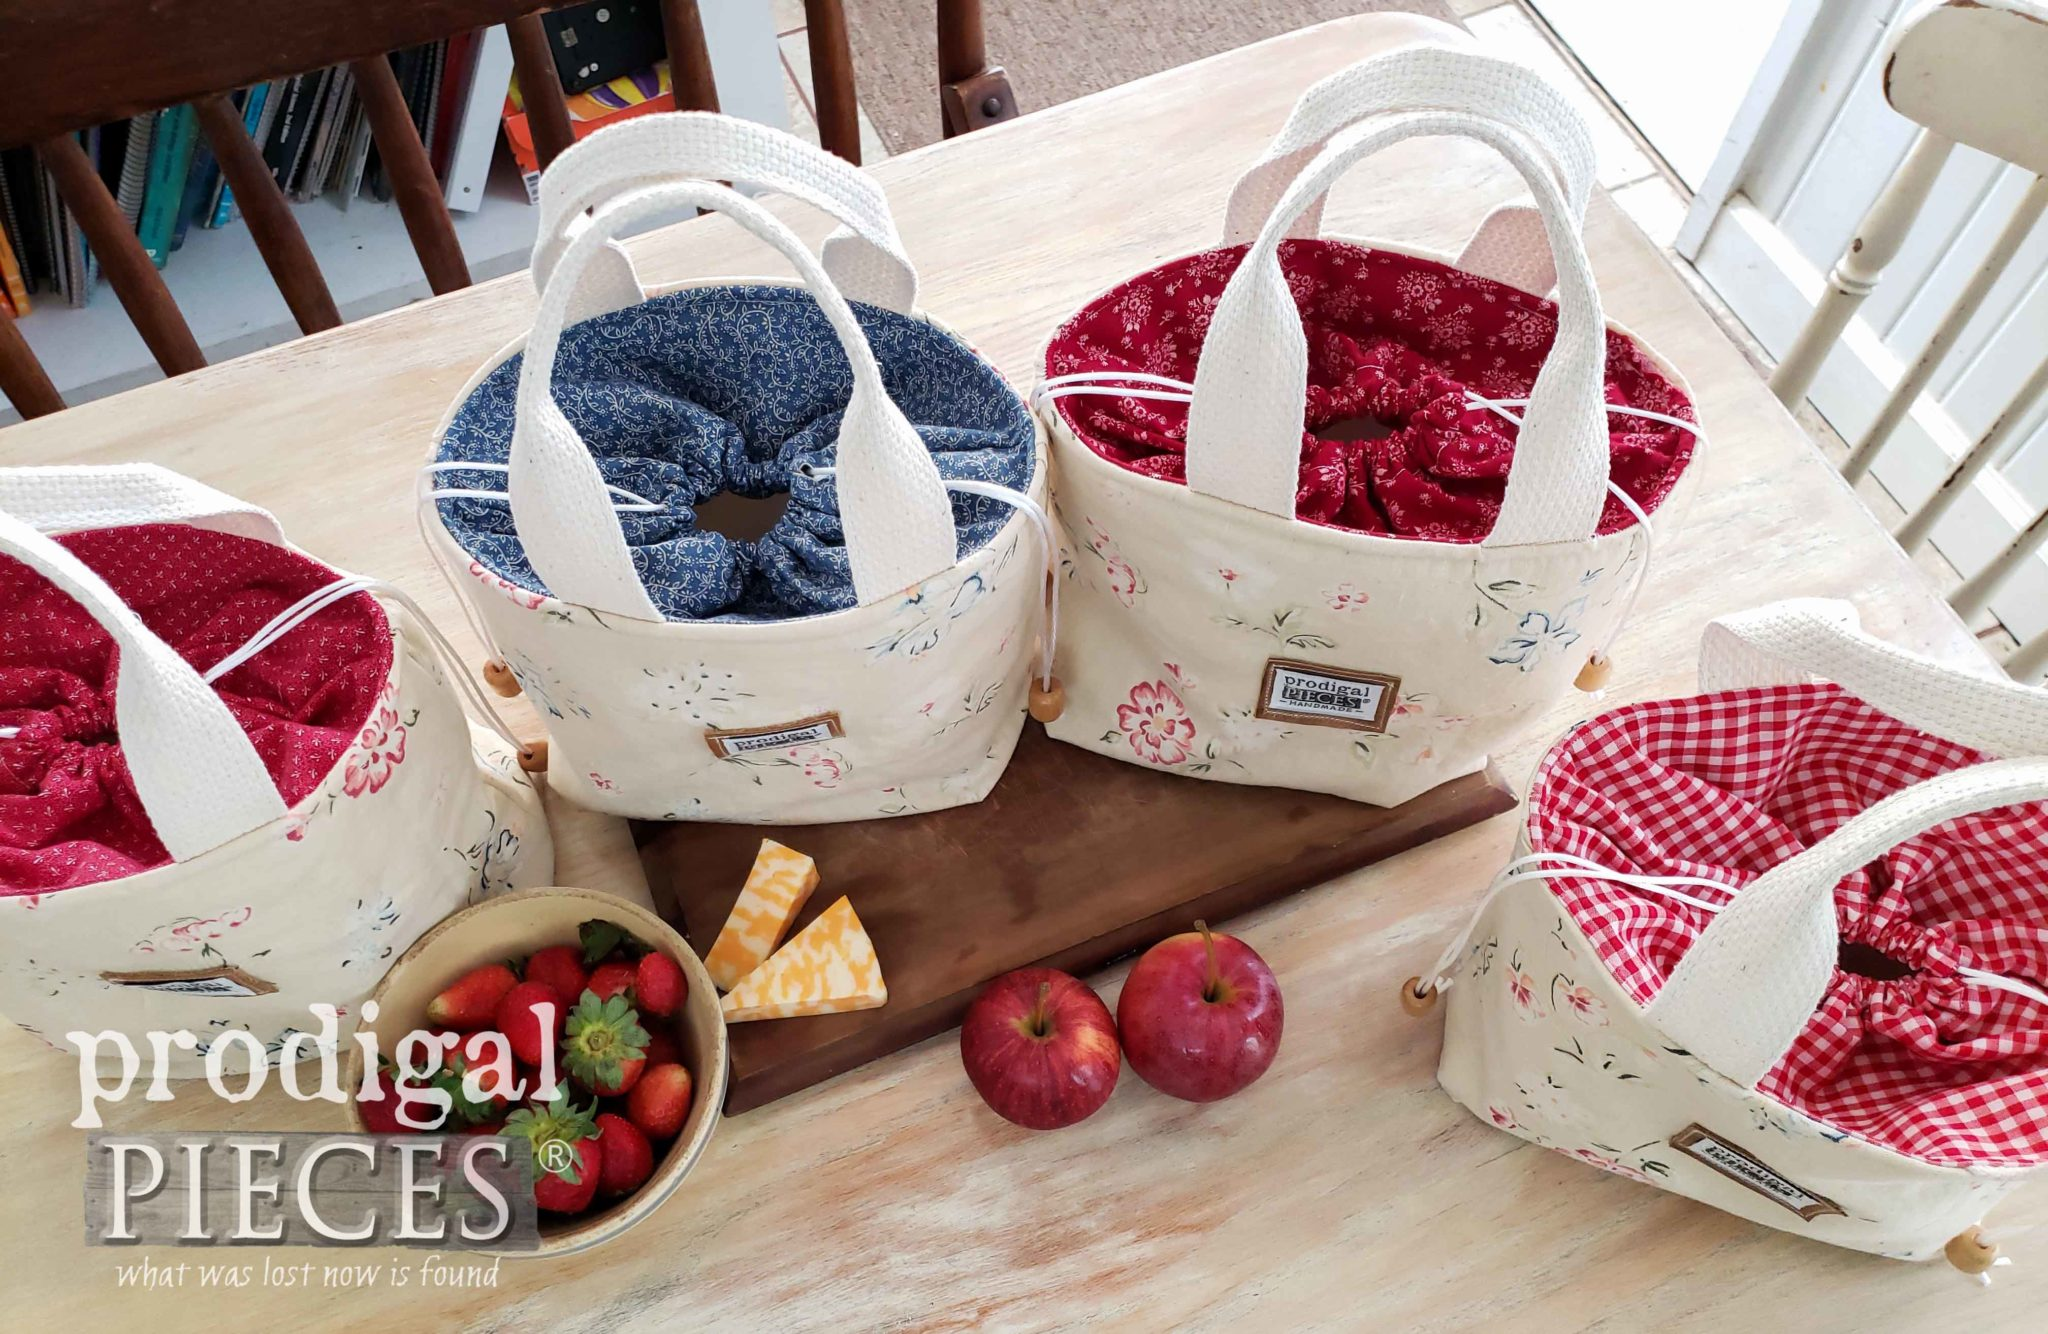 Handmade Linen Lunch Bags from Upcycled Skirt by Larissa of Prodigal Pieces | prodigalpieces.com #prodigalpieces #handmade #style #accessories